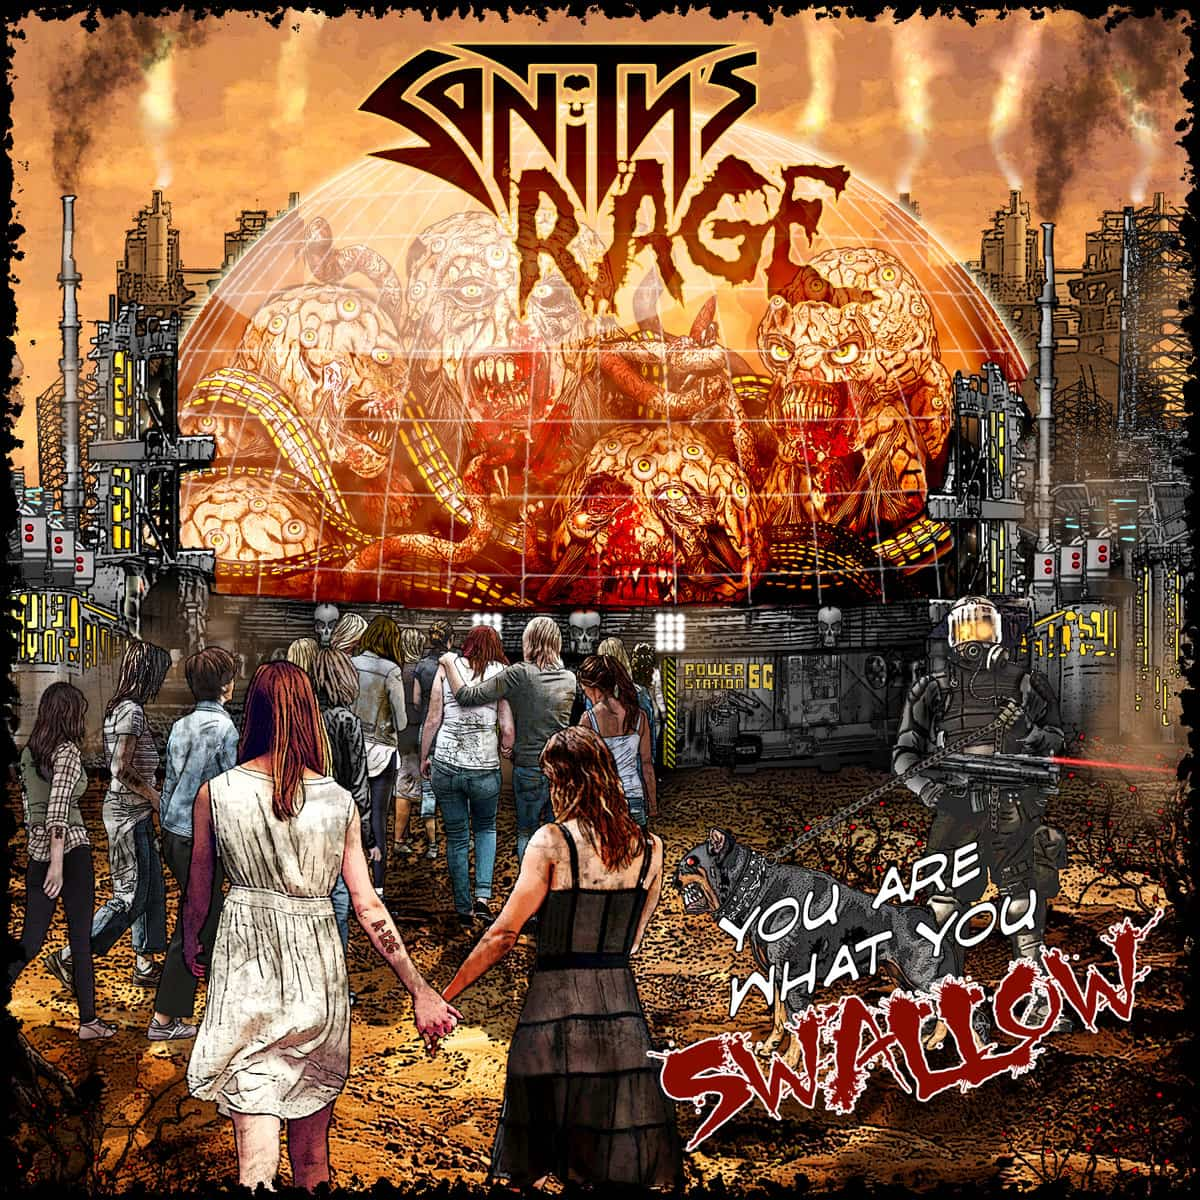 Sanity's Rage - You Are What You Swallow